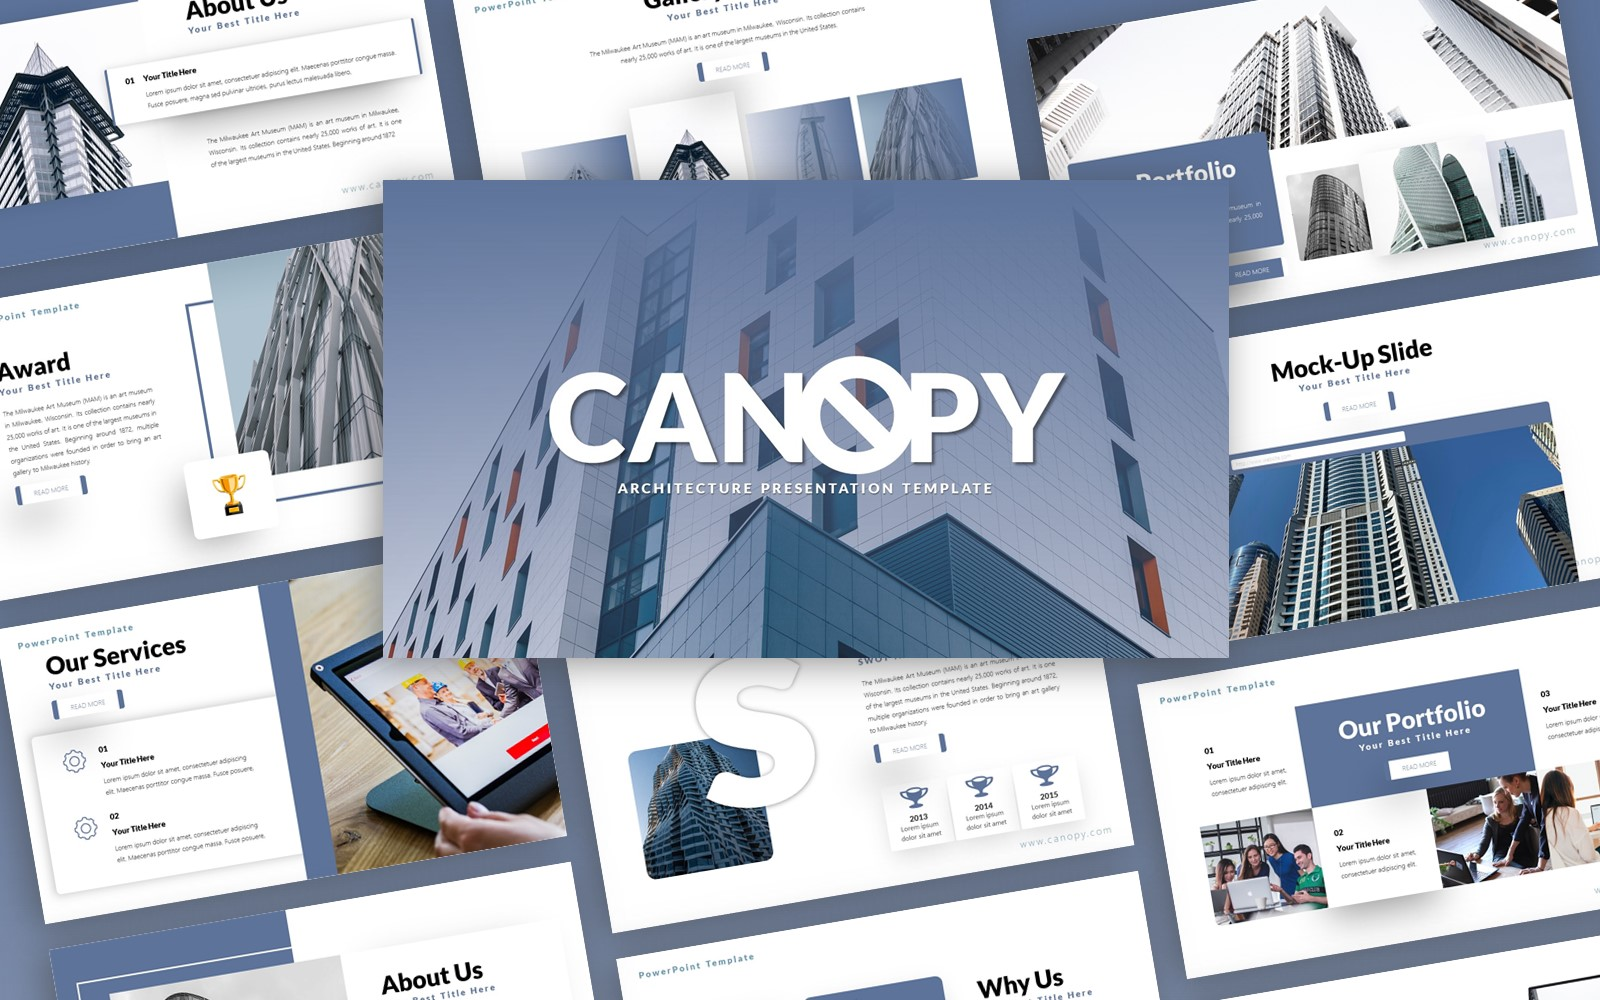 Canopy Architecture Presentation PowerPoint Template